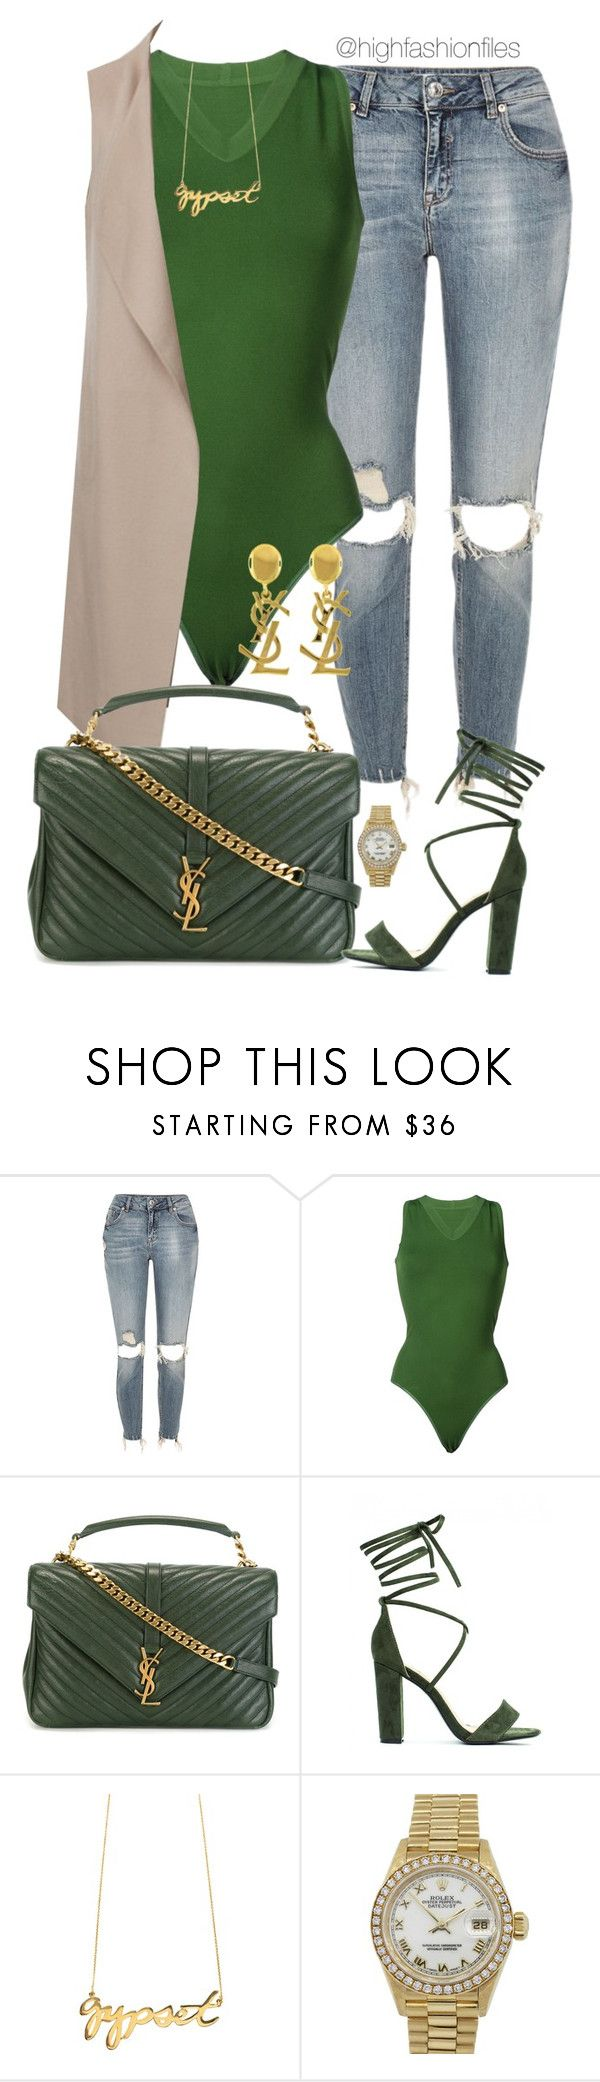 """All About Green"" by highfashionfiles ❤ liked on Polyvore featuring River Island, Alaïa, Yves Saint Laurent, CC SKYE and Rolex"